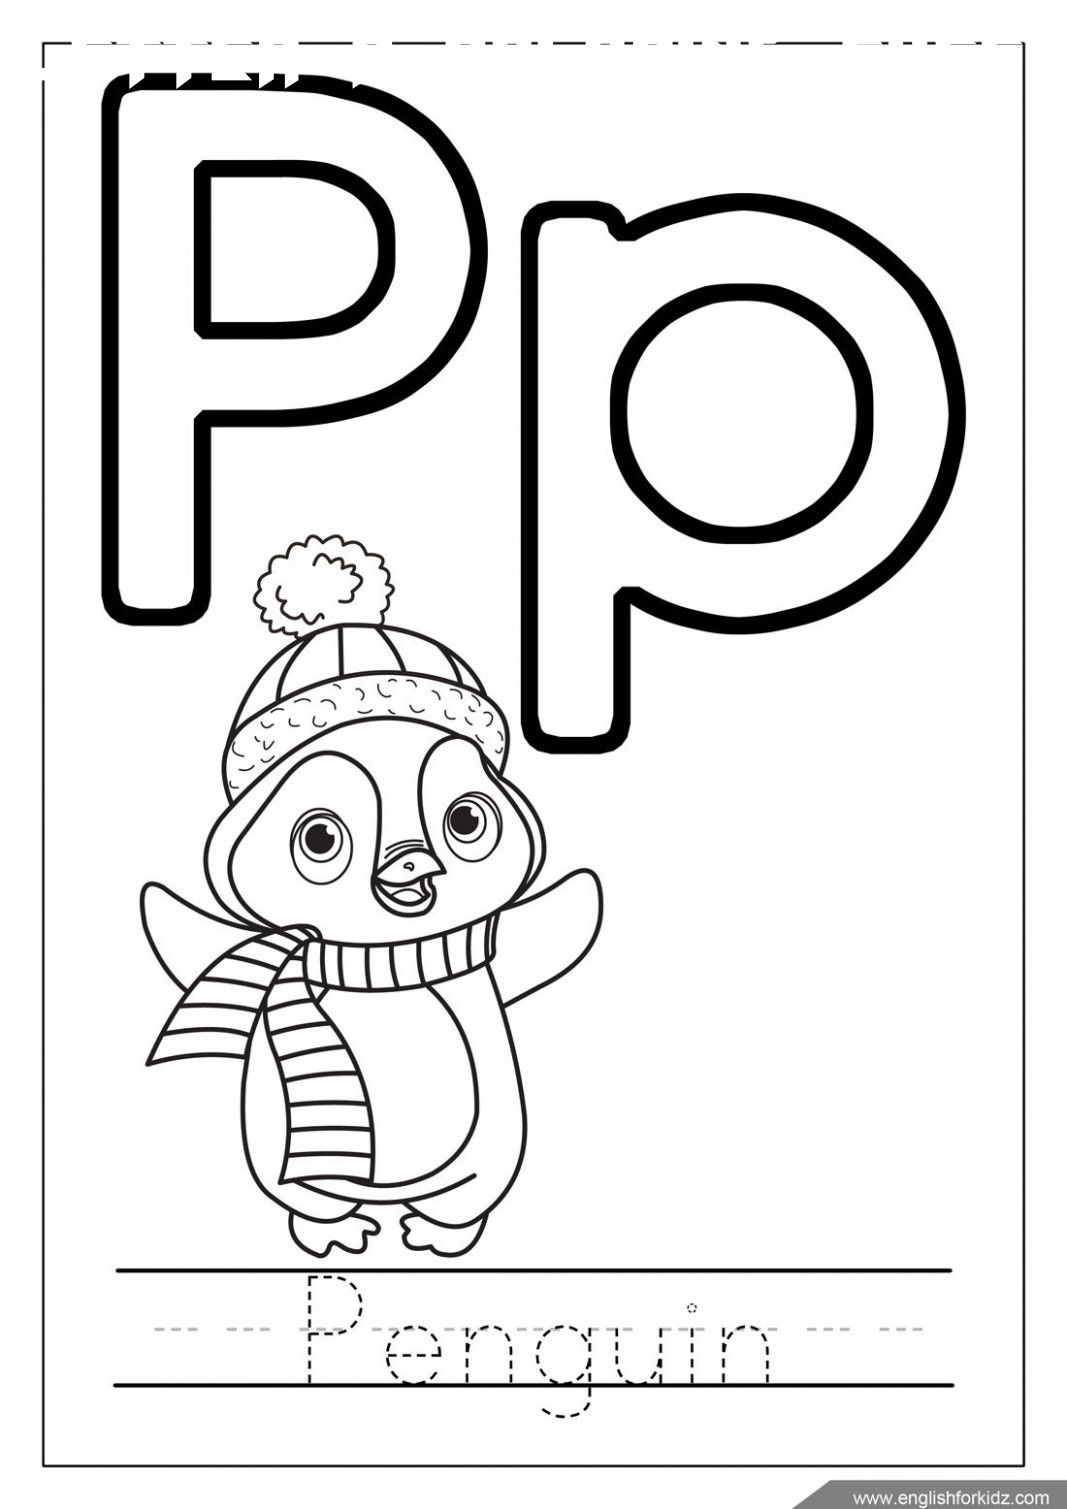 10 Letter P Coloring Sheets In